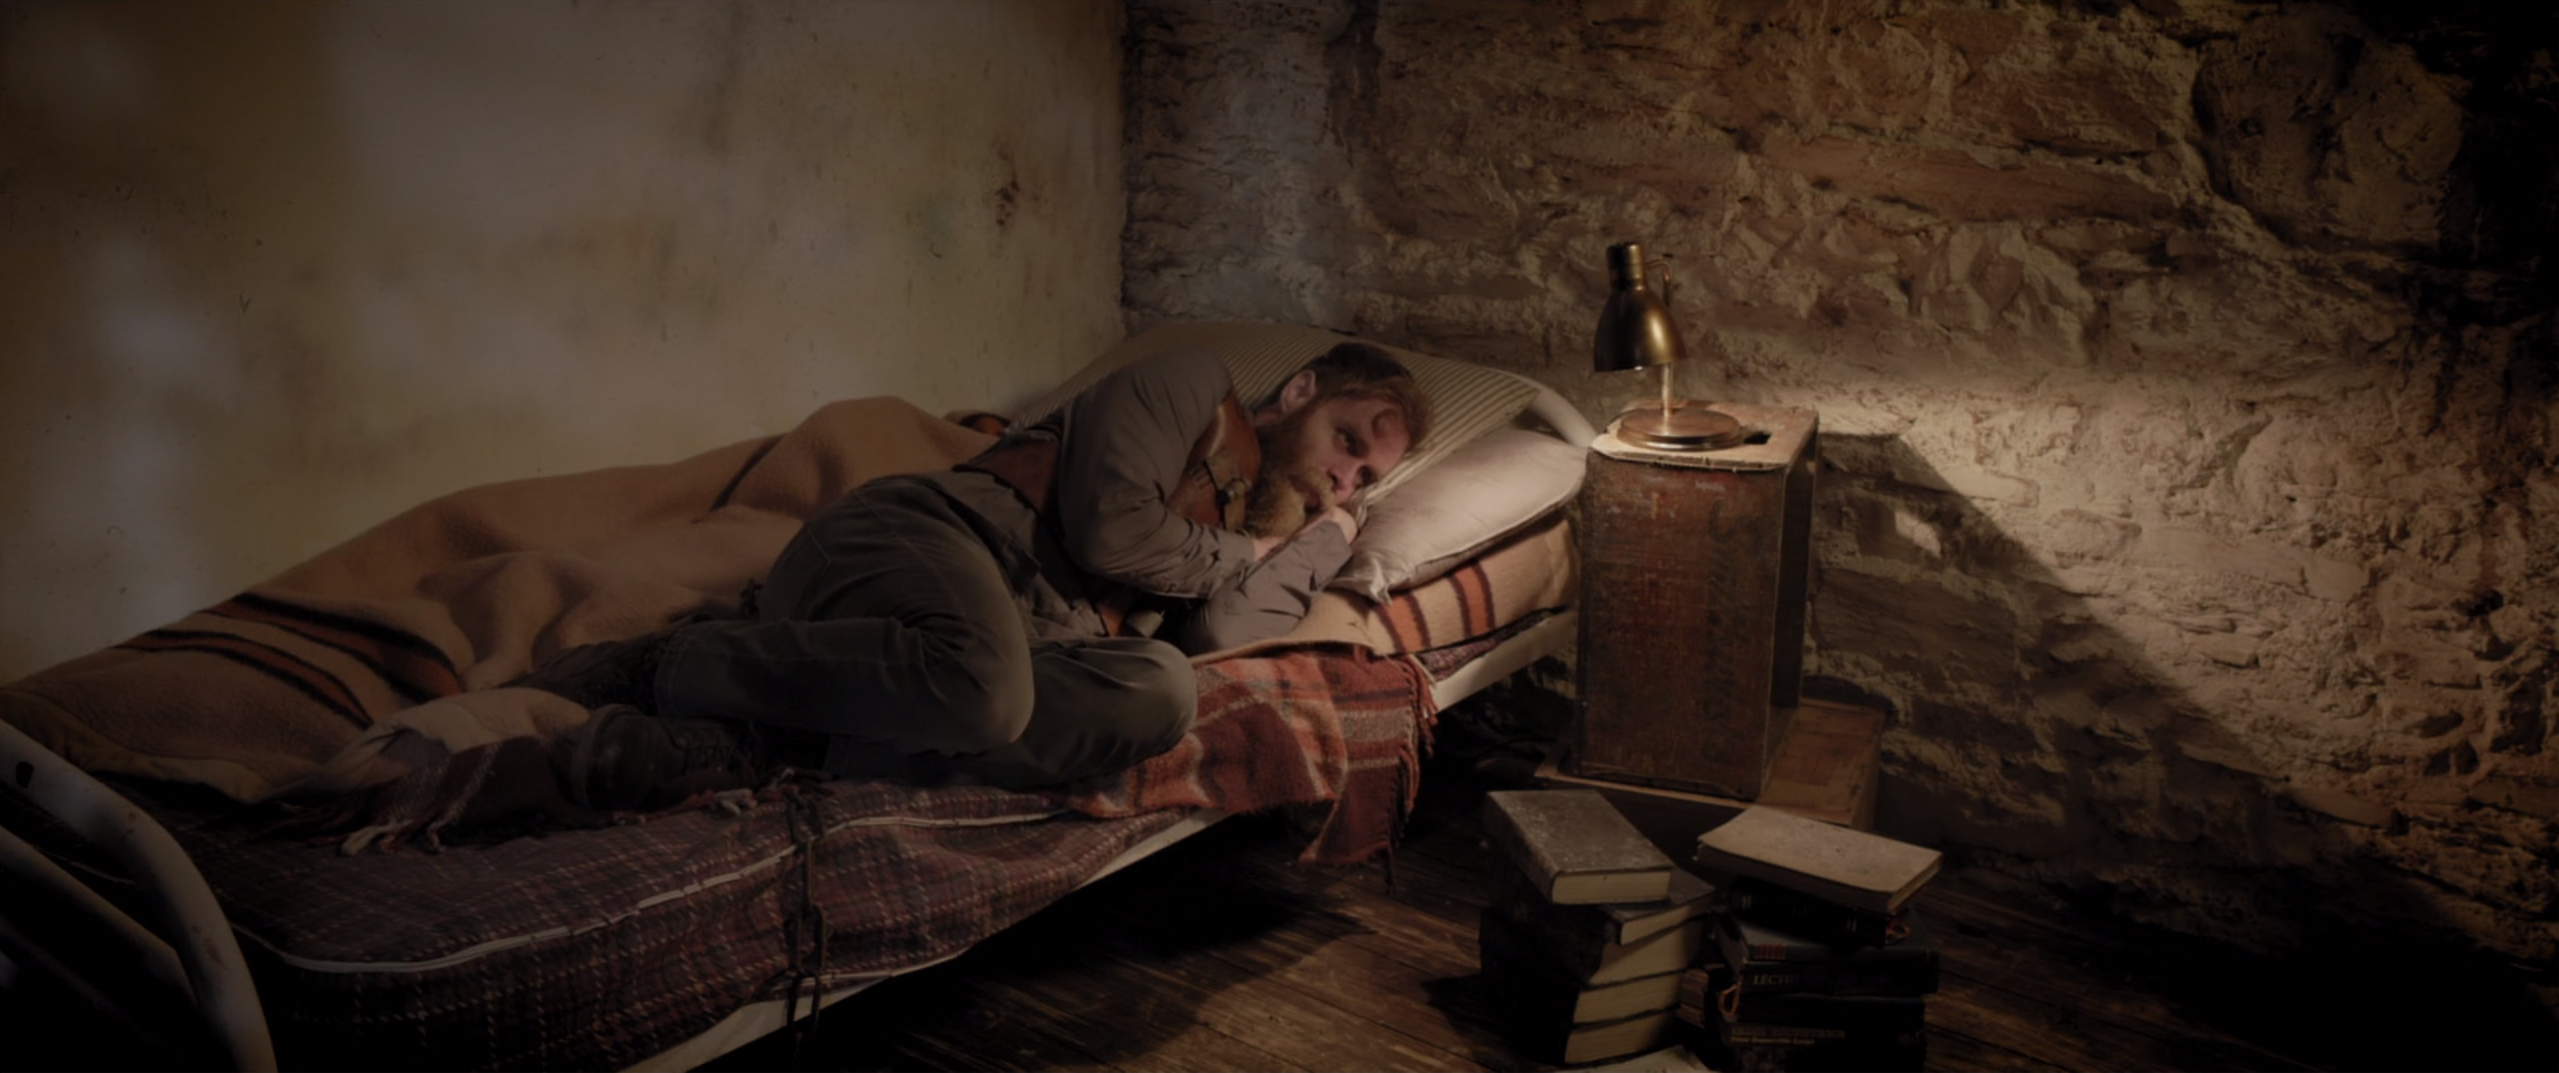 Caveat Review: Unsettling Irish Horror Debut has Promise